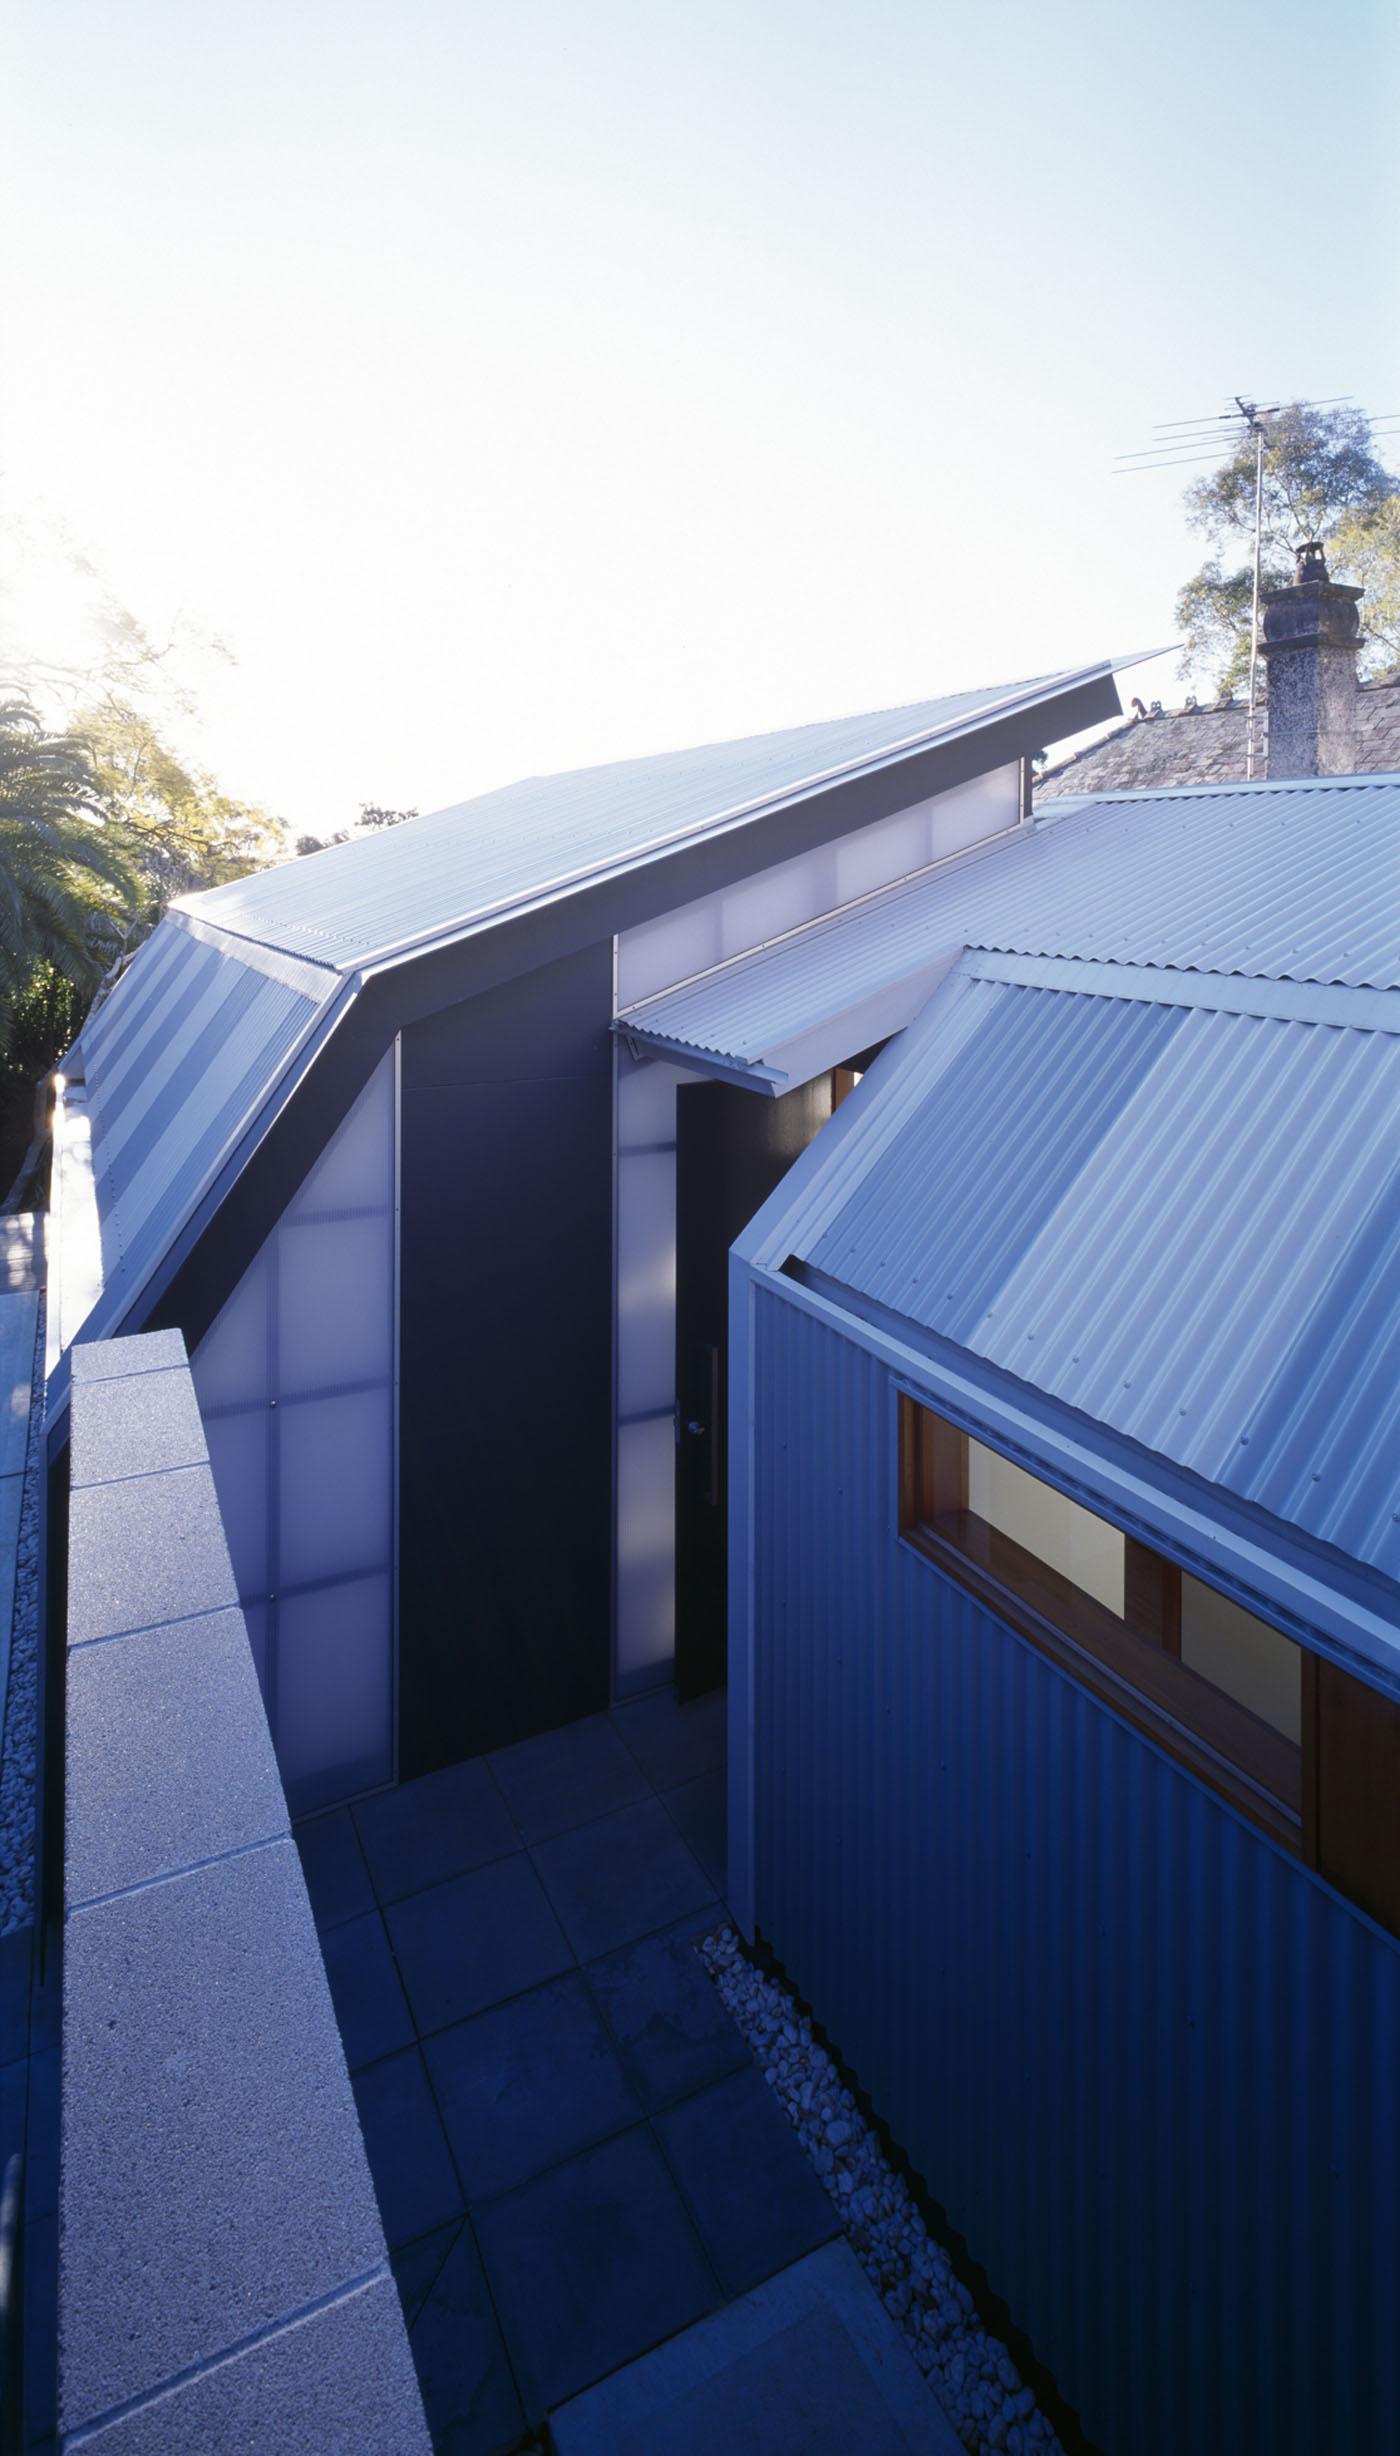 Wave House by Sydney award winning residential architecture firm Sam Crawford Architects. View of folded metal deck roof over new house addition from side entry.